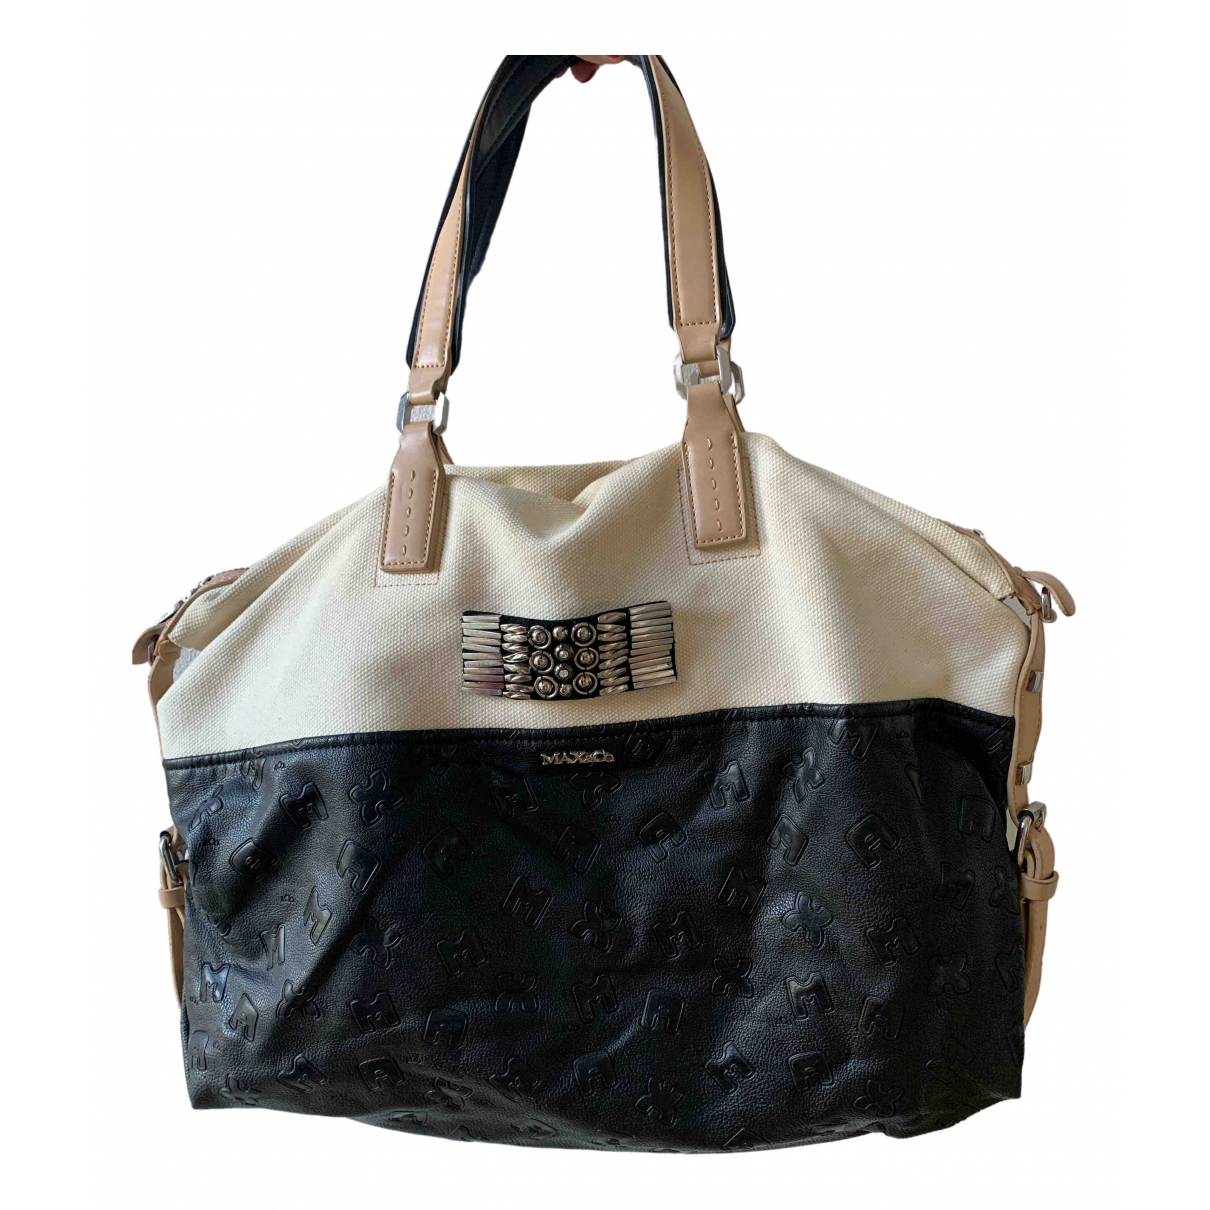 Max & Co \N White Cotton handbag for Women \N